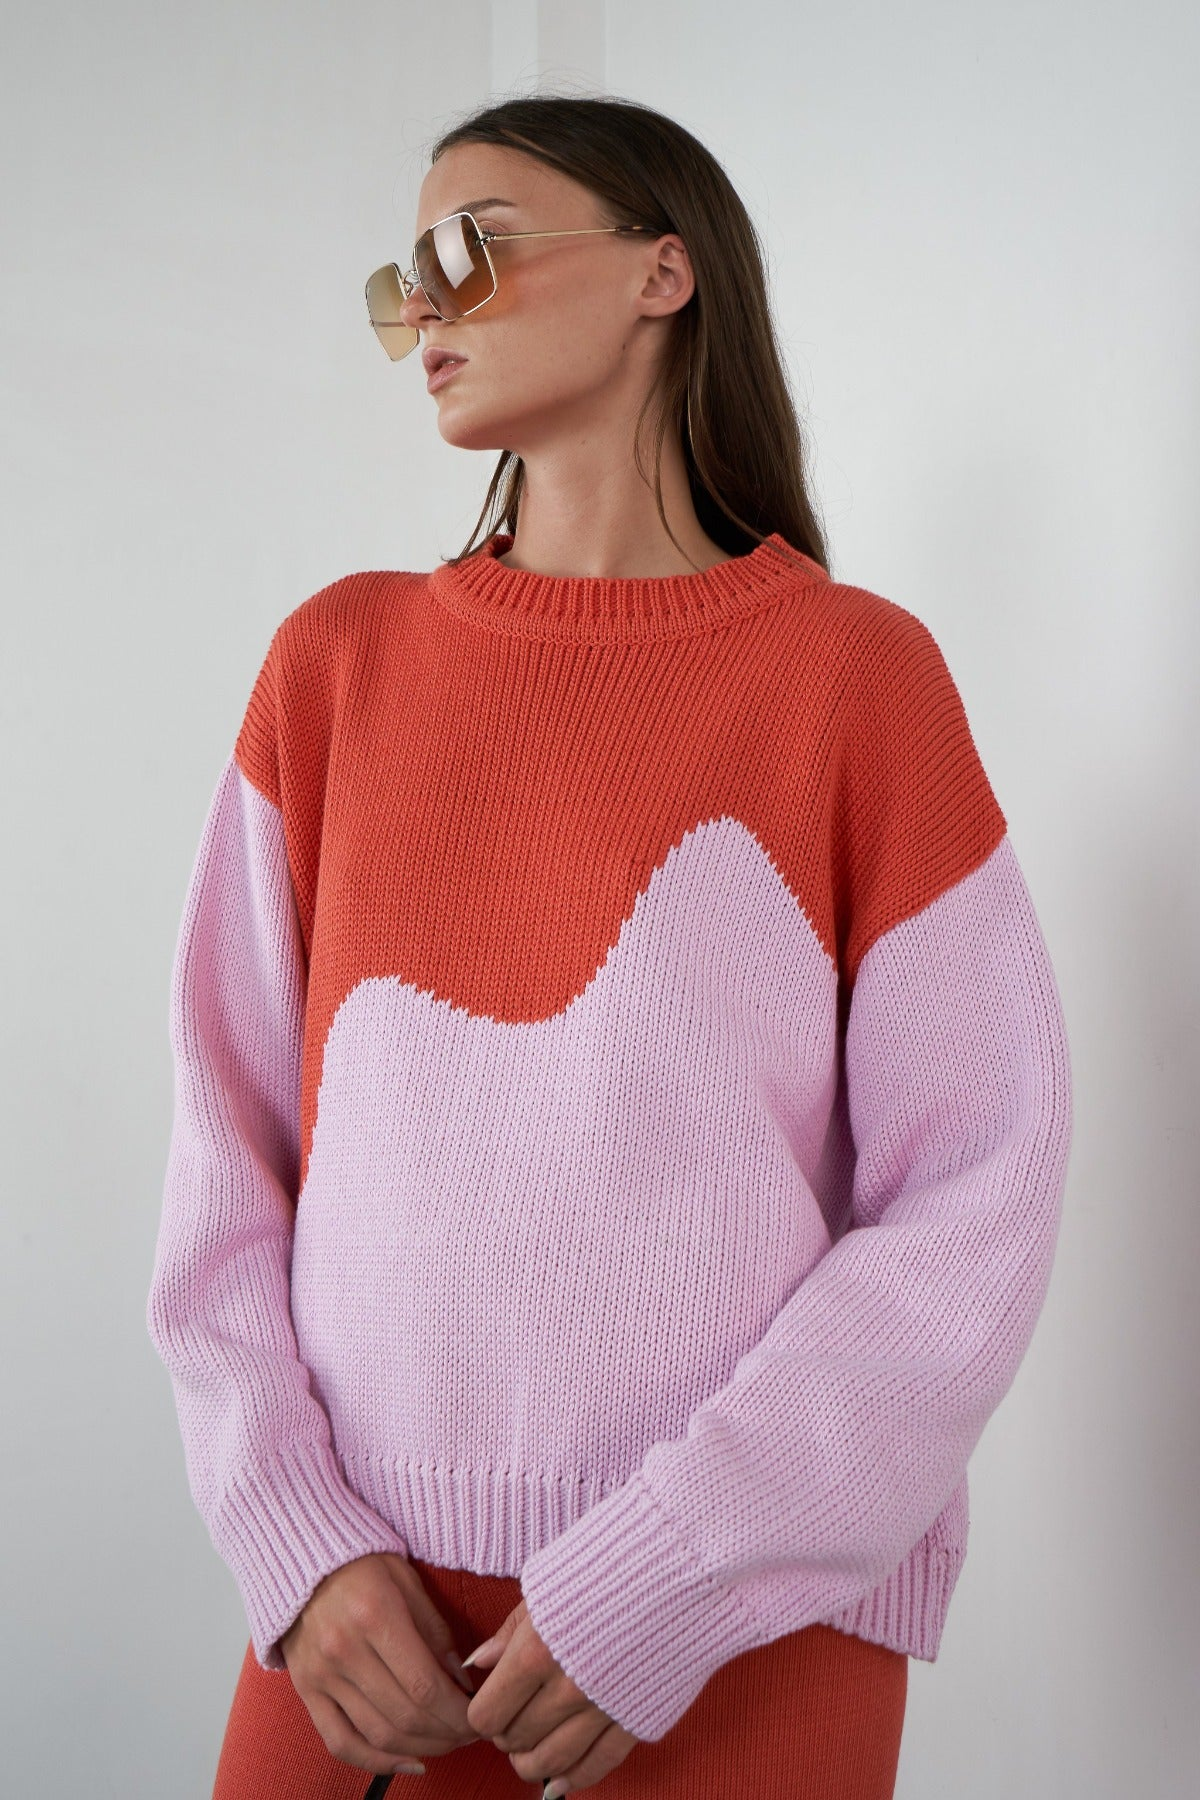 Arthur Oversized Pullover in Spliced Pink/Melon